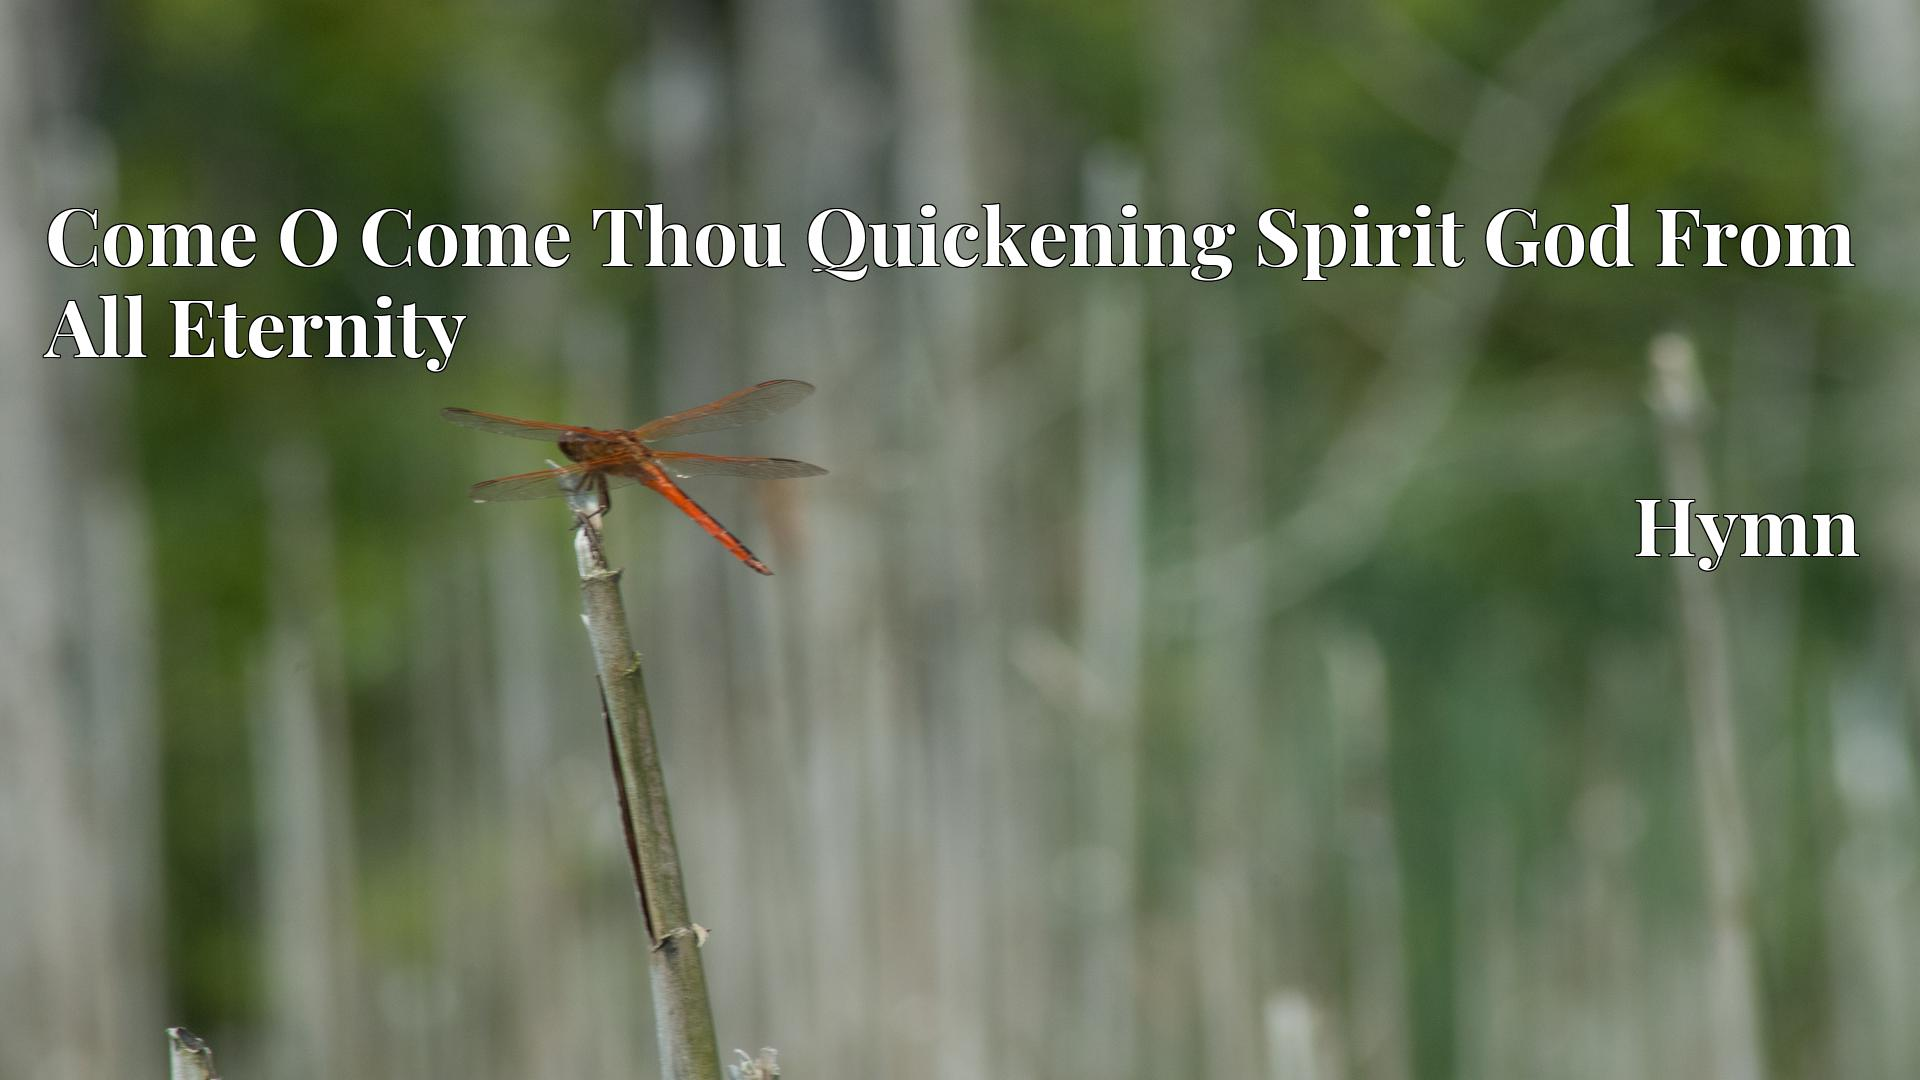 Come O Come Thou Quickening Spirit God From All Eternity - Hymn